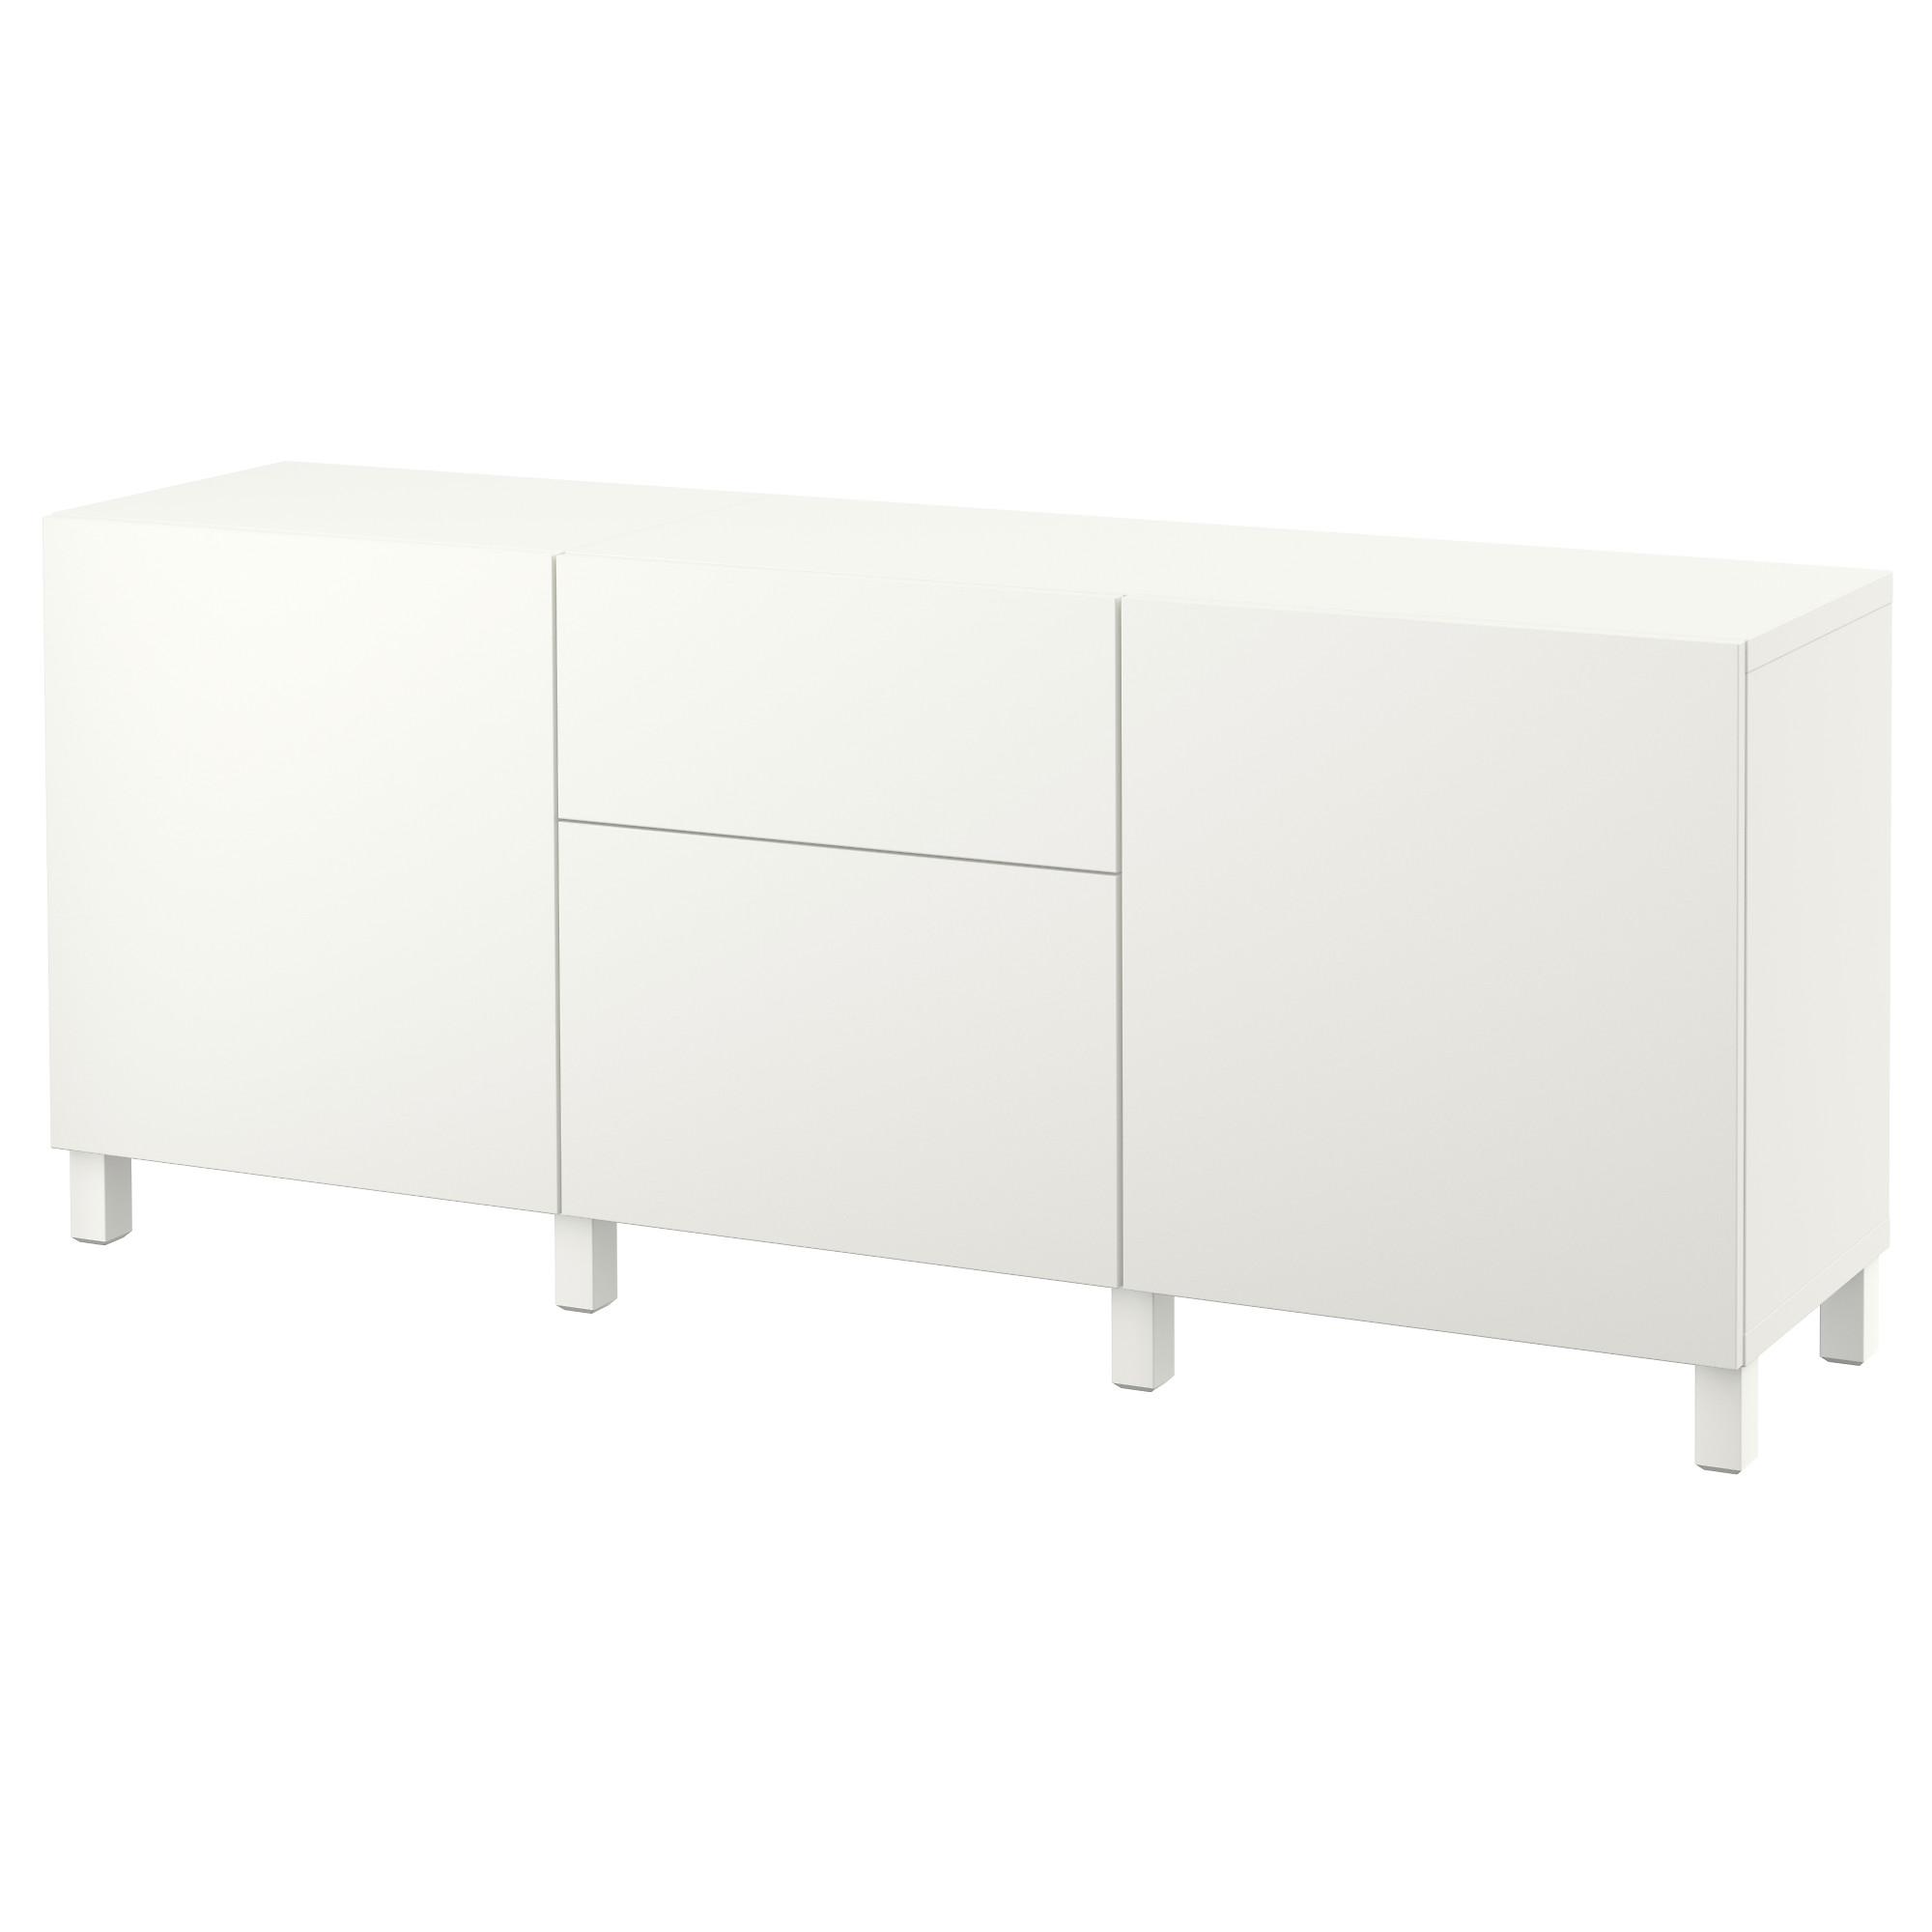 Stella - Furniture Options